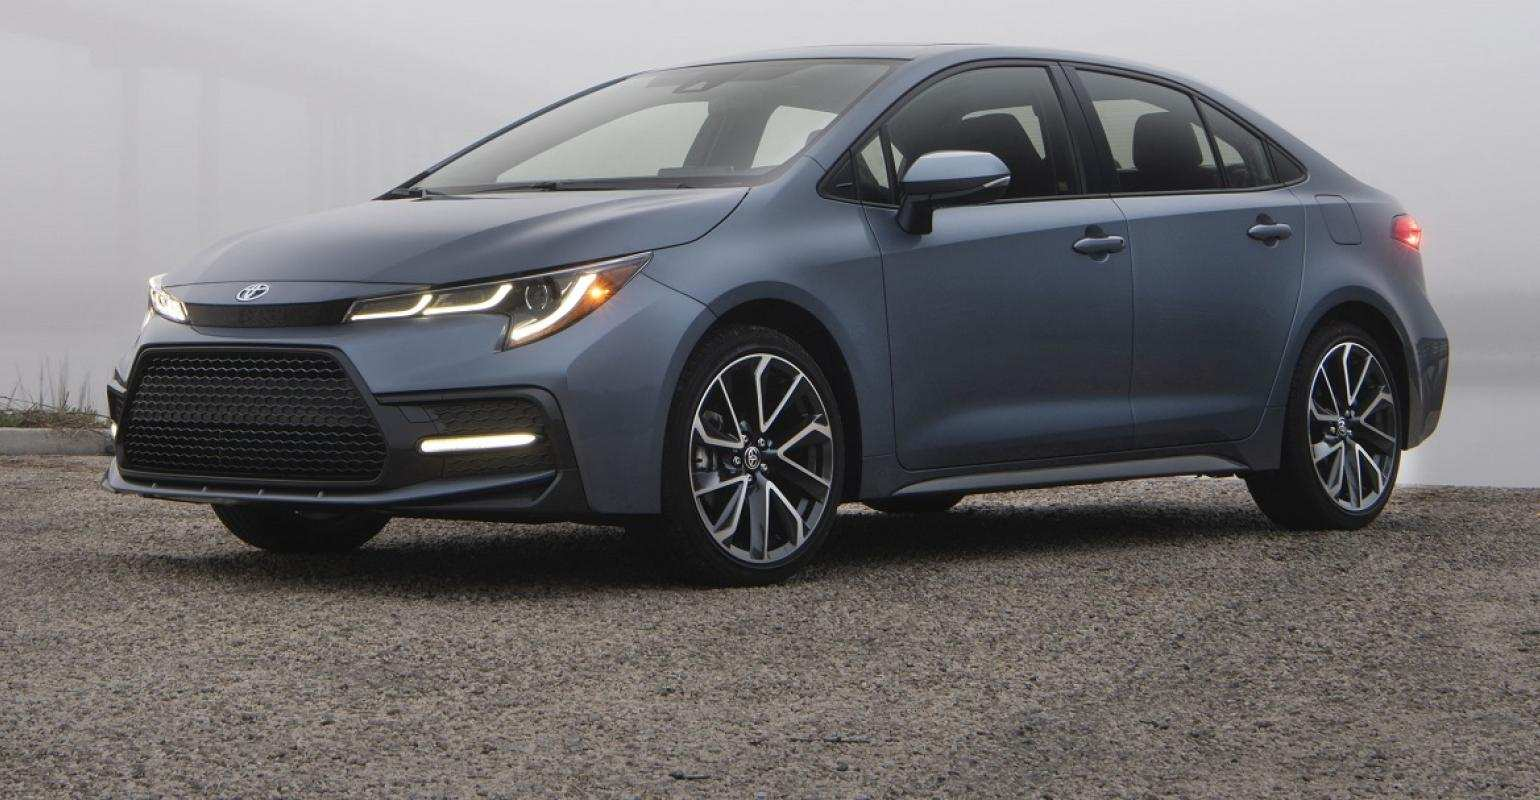 77 The Best 2020 Toyota Corolla Ratings